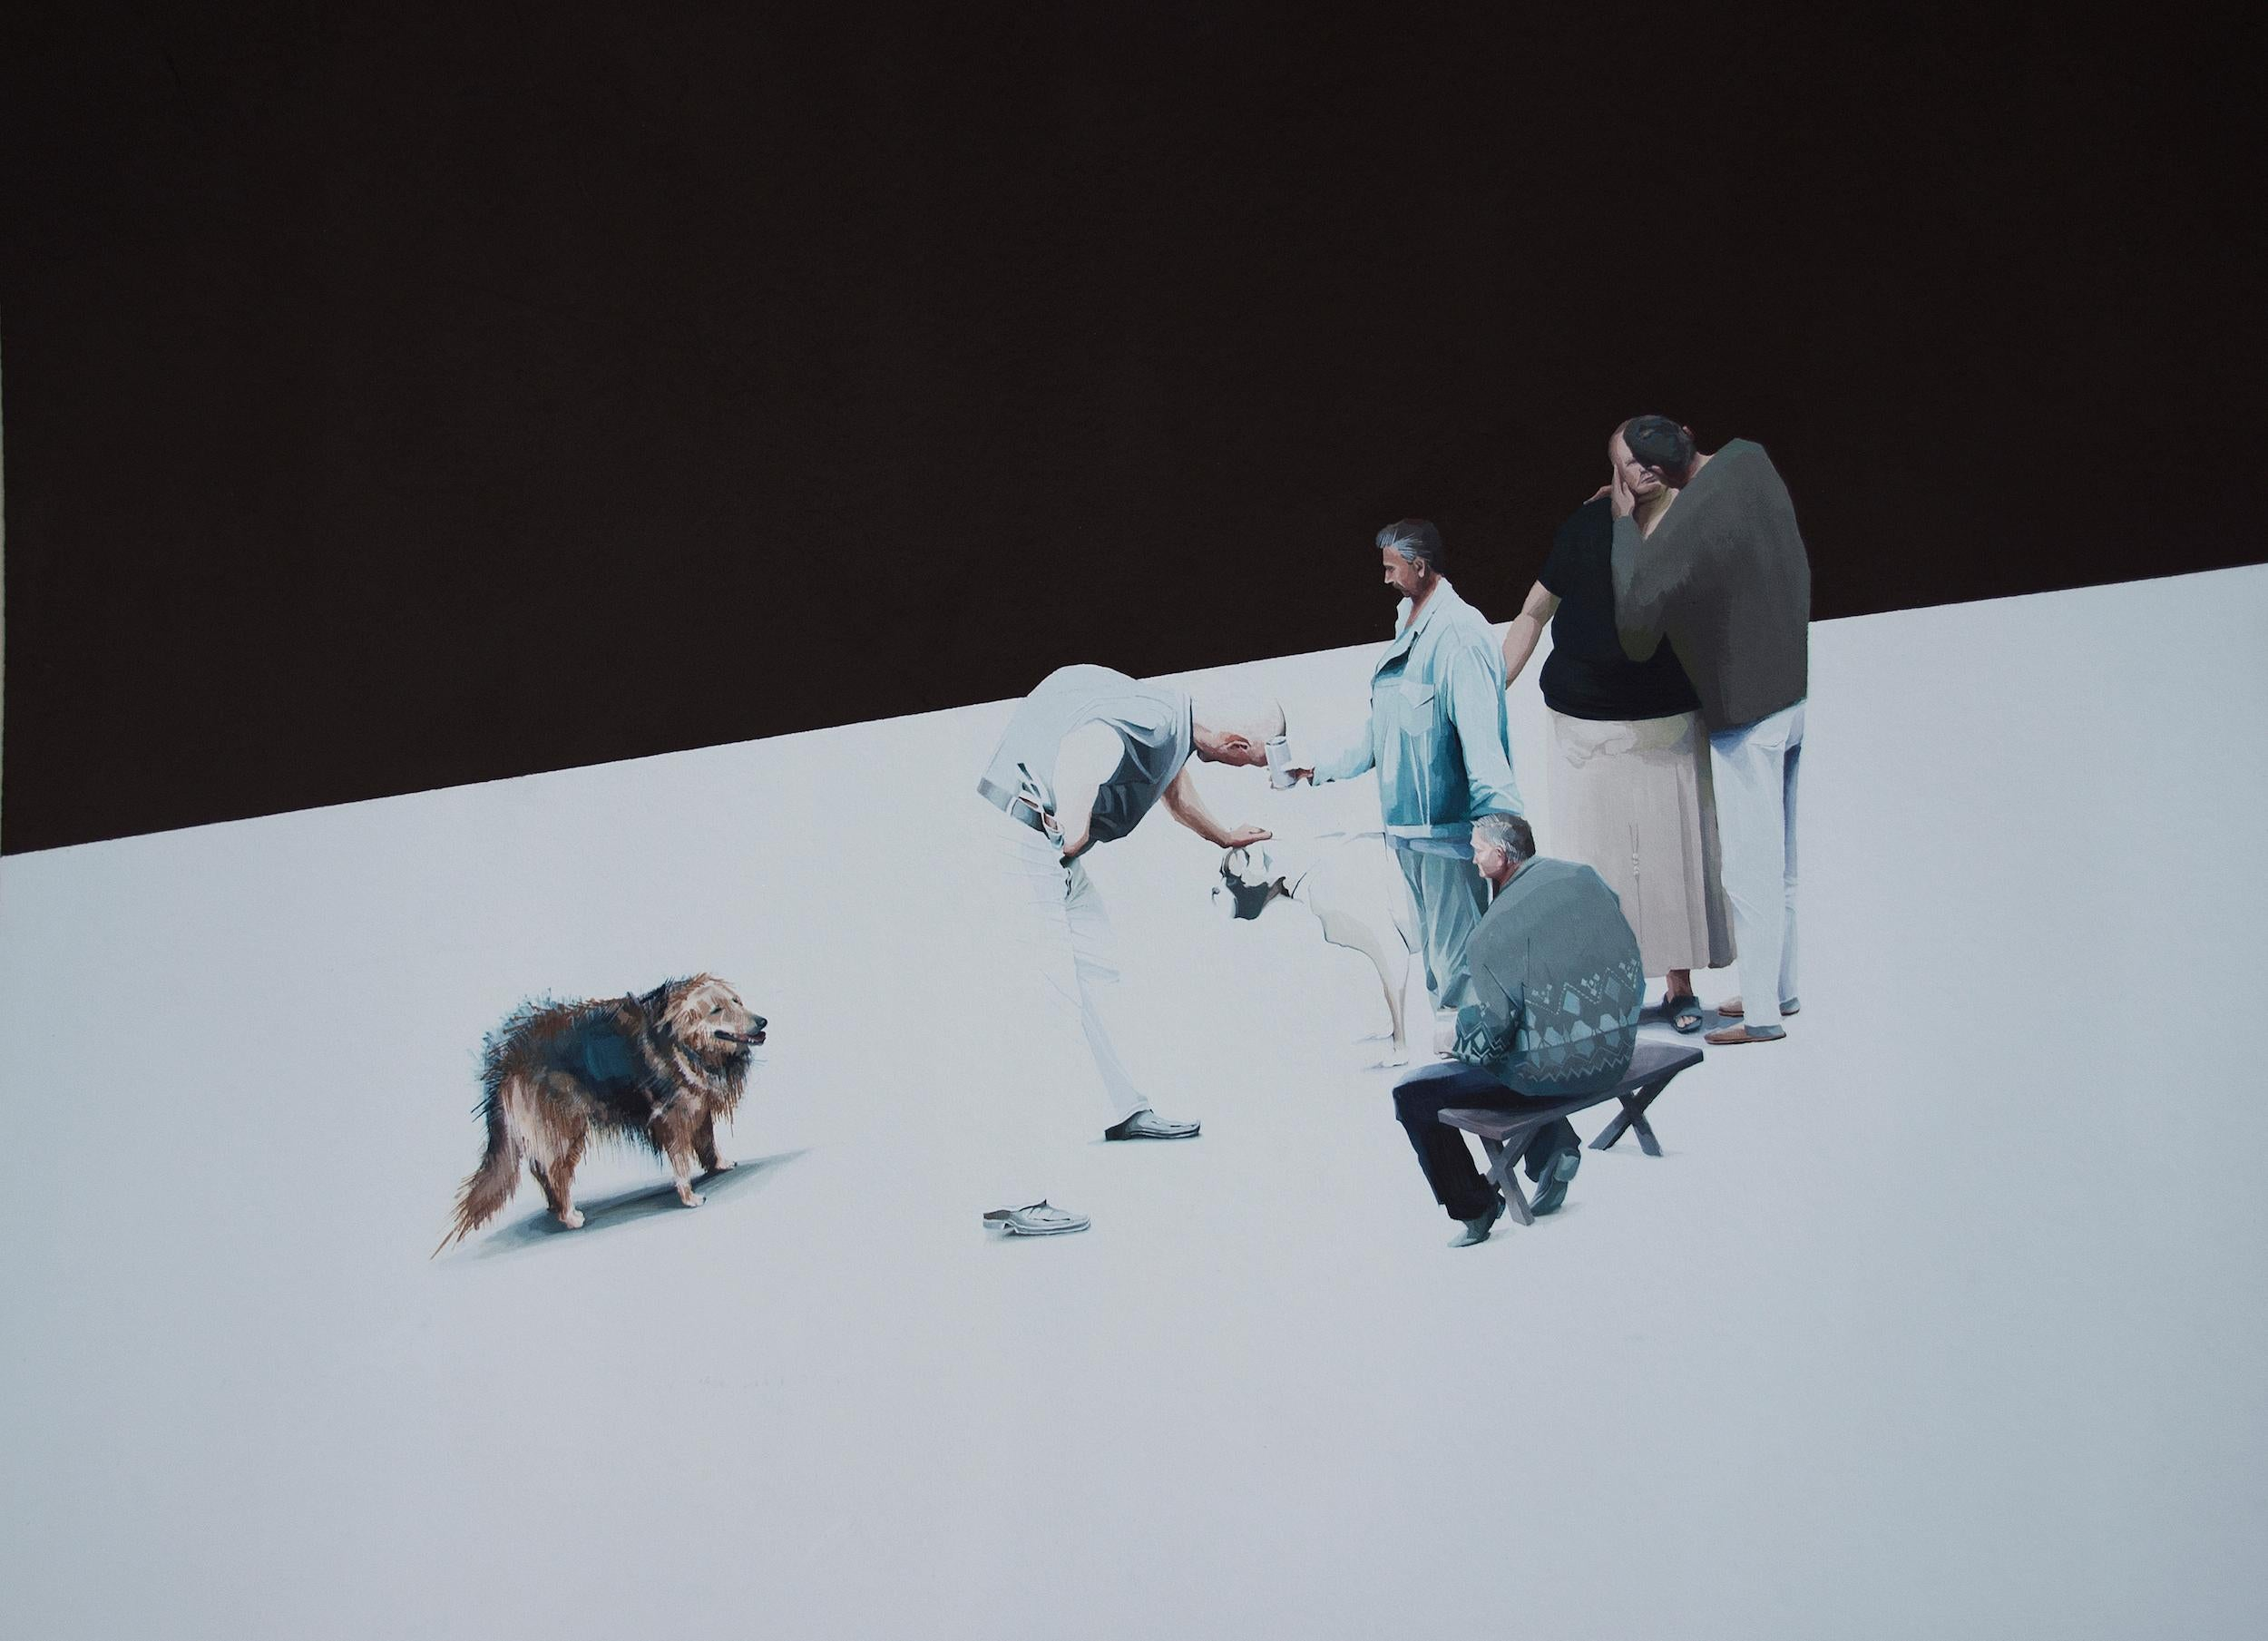 Untitled  5 - Series Final Fantasy, Modern Figurative Painting With Dogs